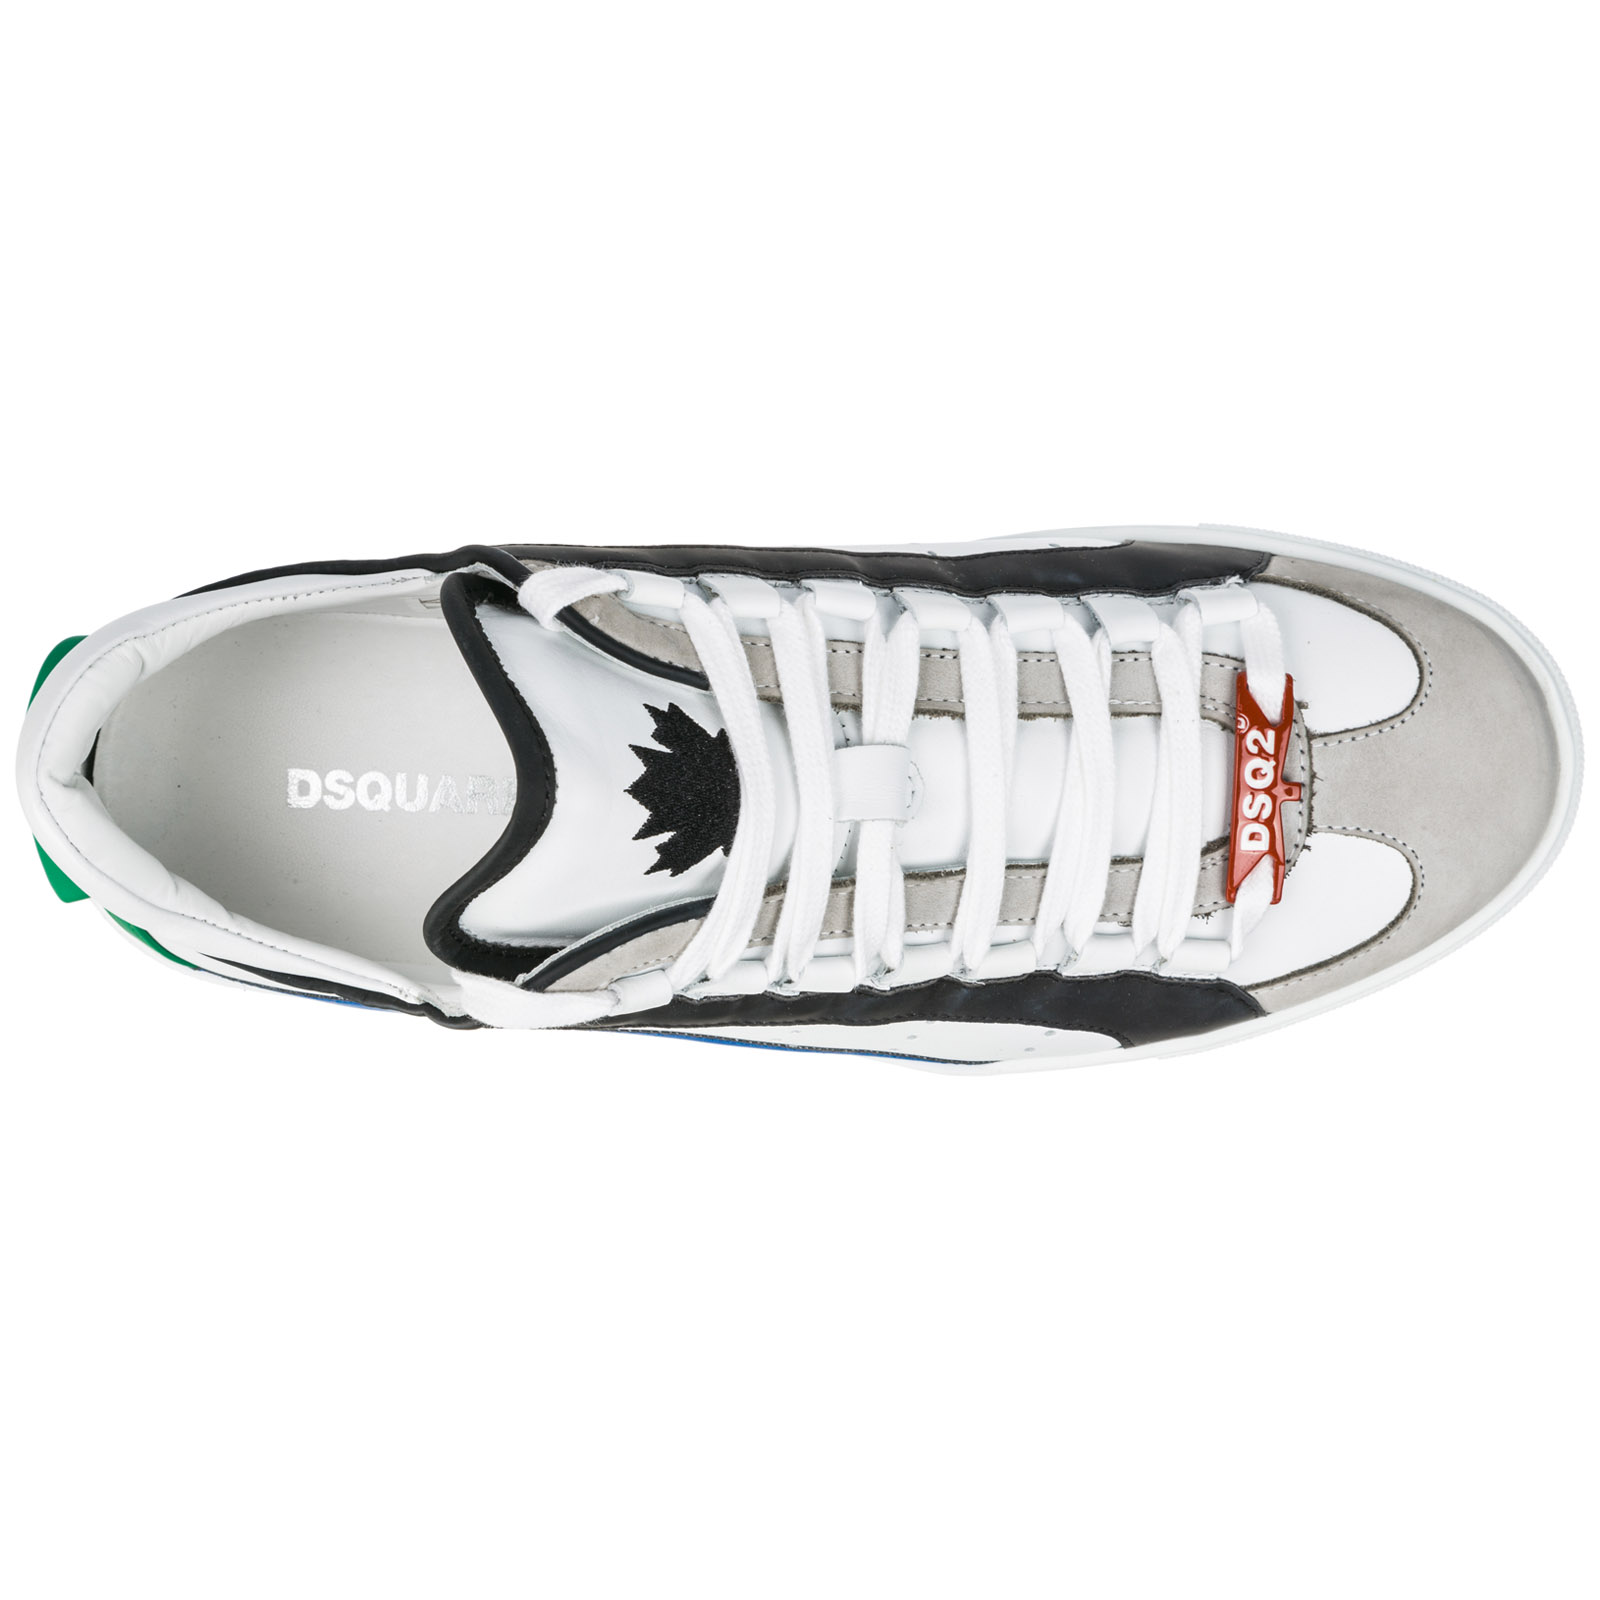 Men's shoes leather trainers sneakers 551